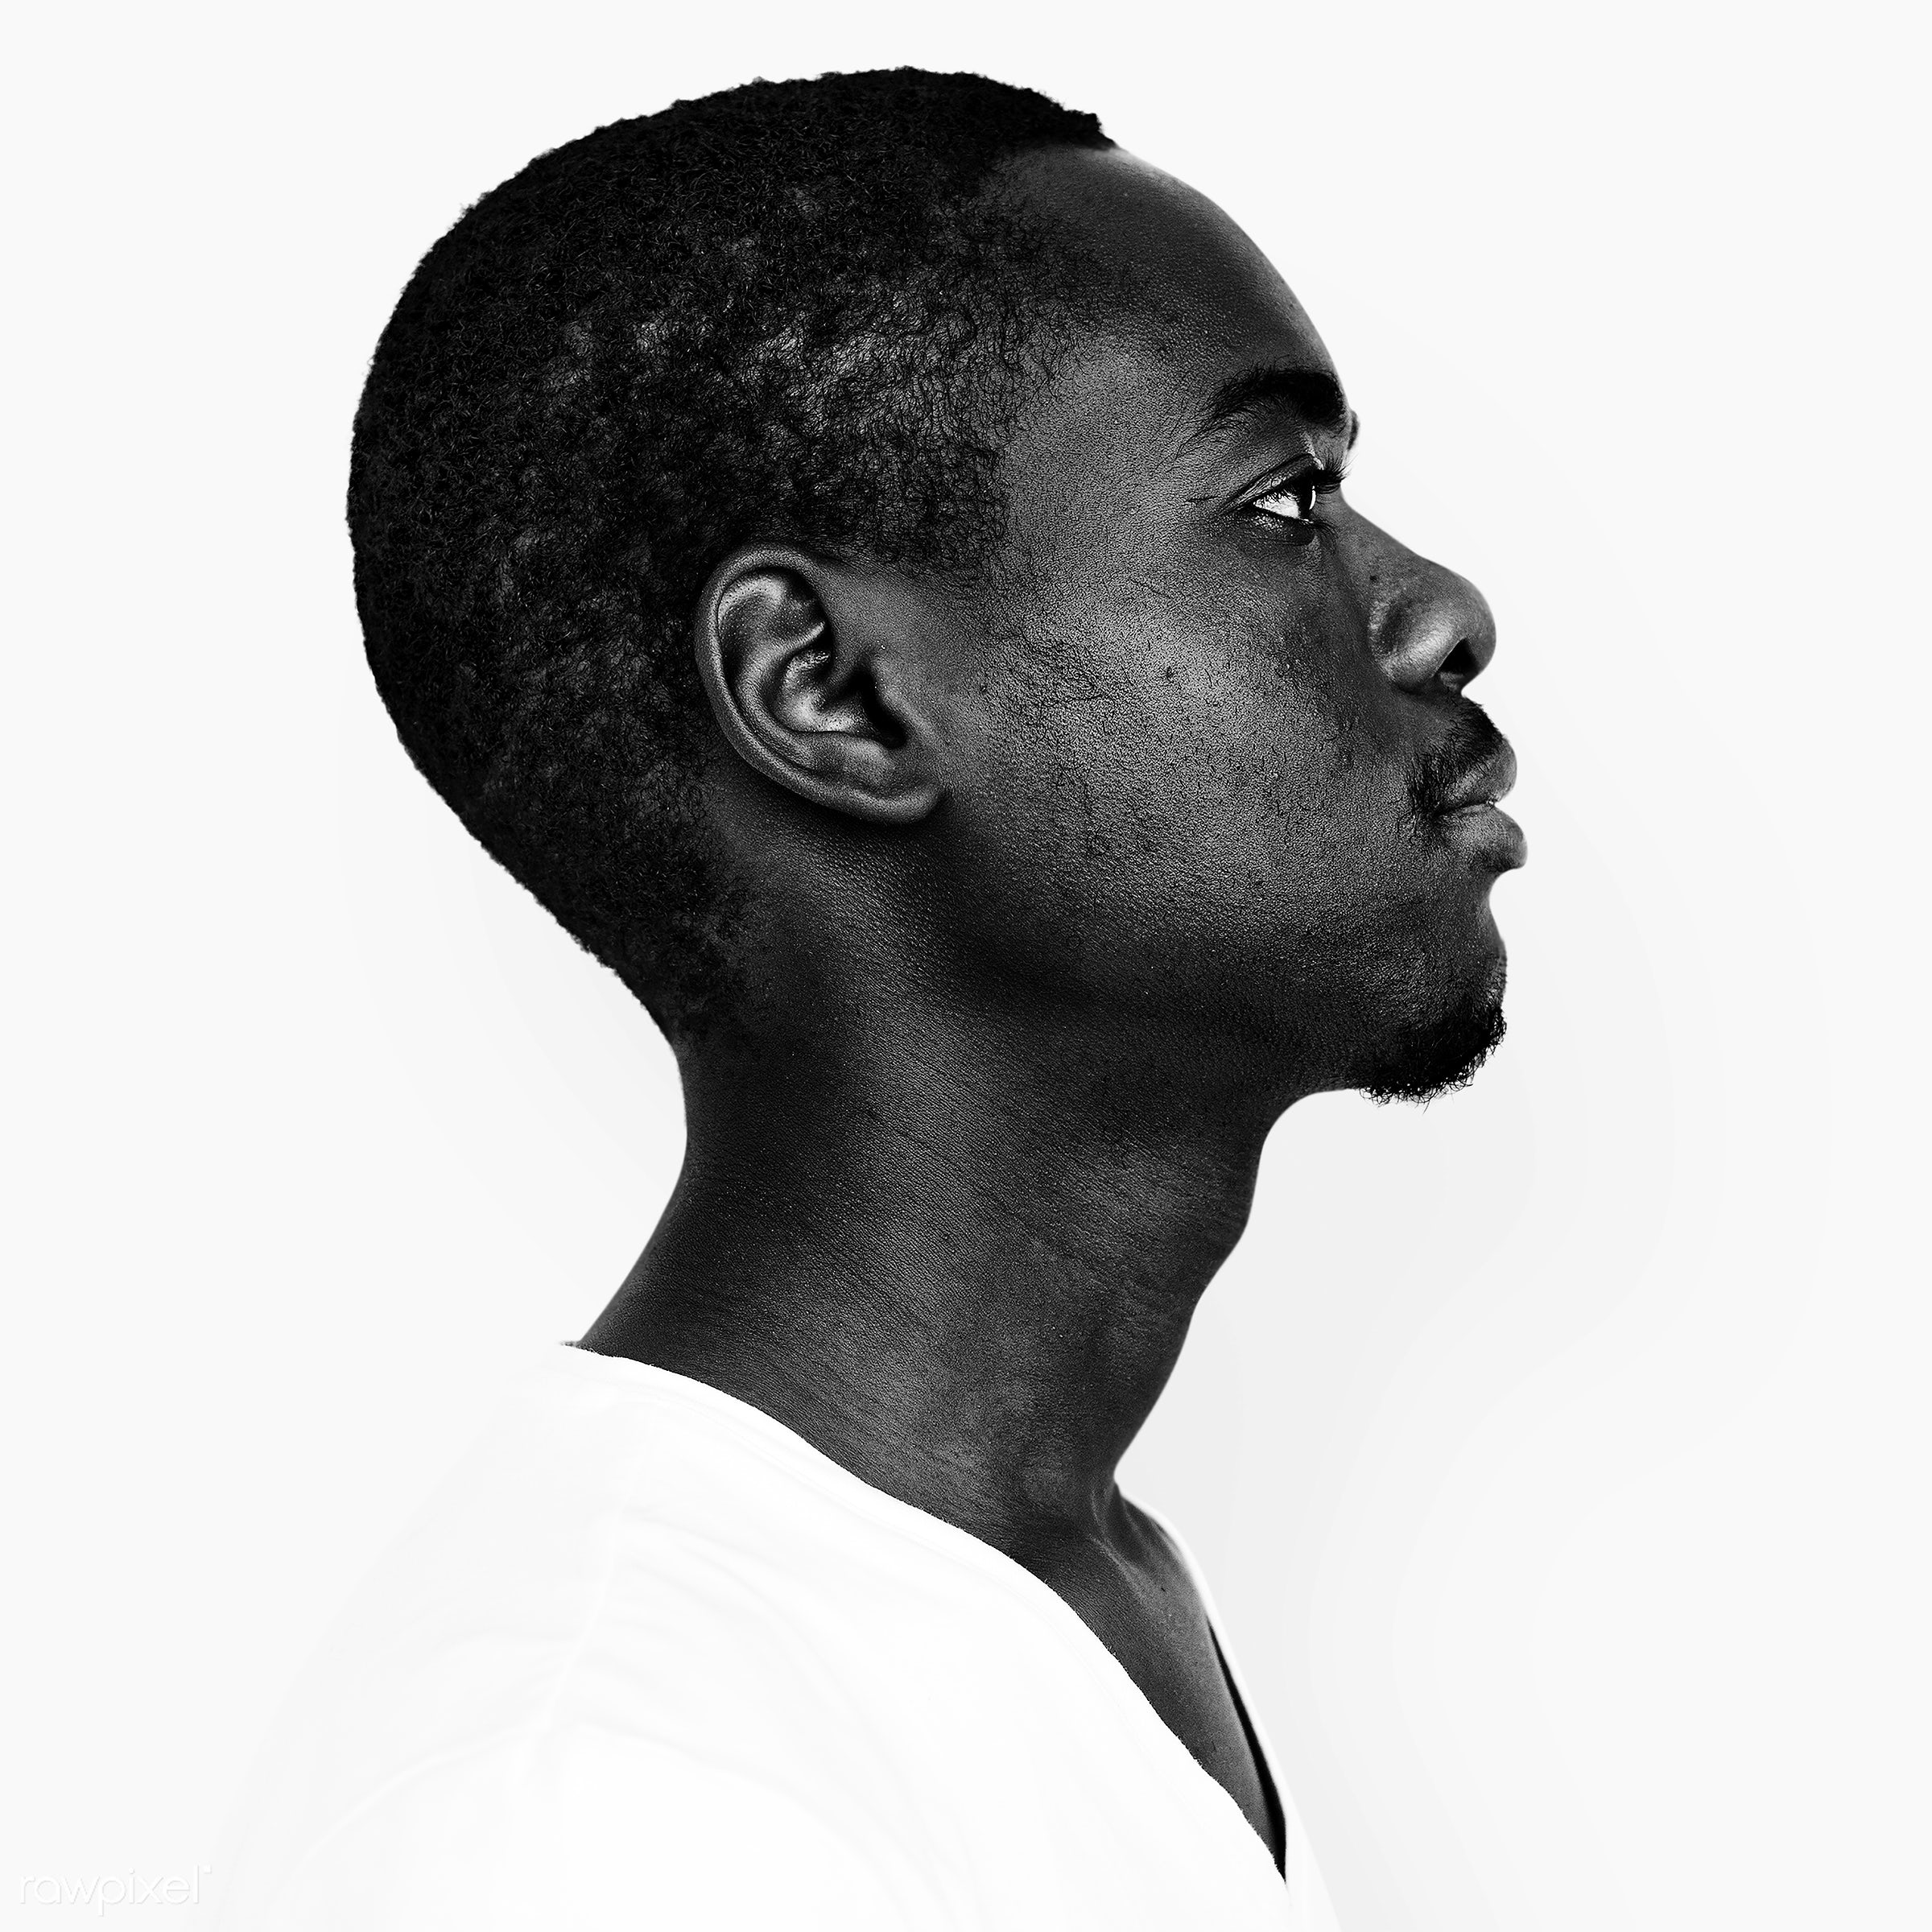 Portrait of a Namibian man - african, african descent, alone, black, black and white, closeup, cool, expression, face,...